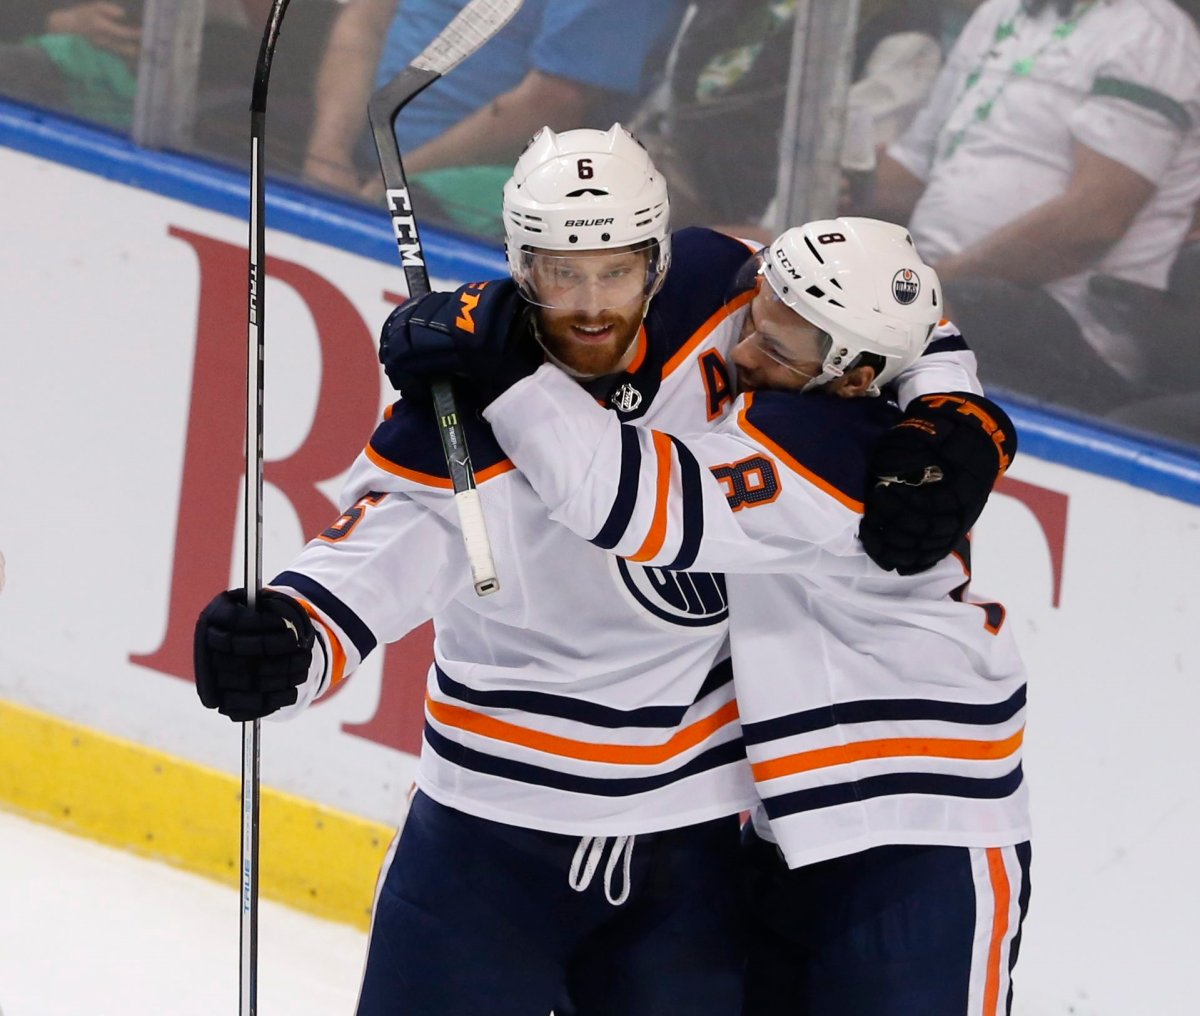 Edmonton Oilers defenseman Adam Larsson (6) celebrates his game-winning goal in the third period with teammate Ty Rattie (8) over the Florida Panthers during an NHL hockey game, Saturday, March 17, 2018, in Sunrise, Fla. The Oilers won the game 4-2.